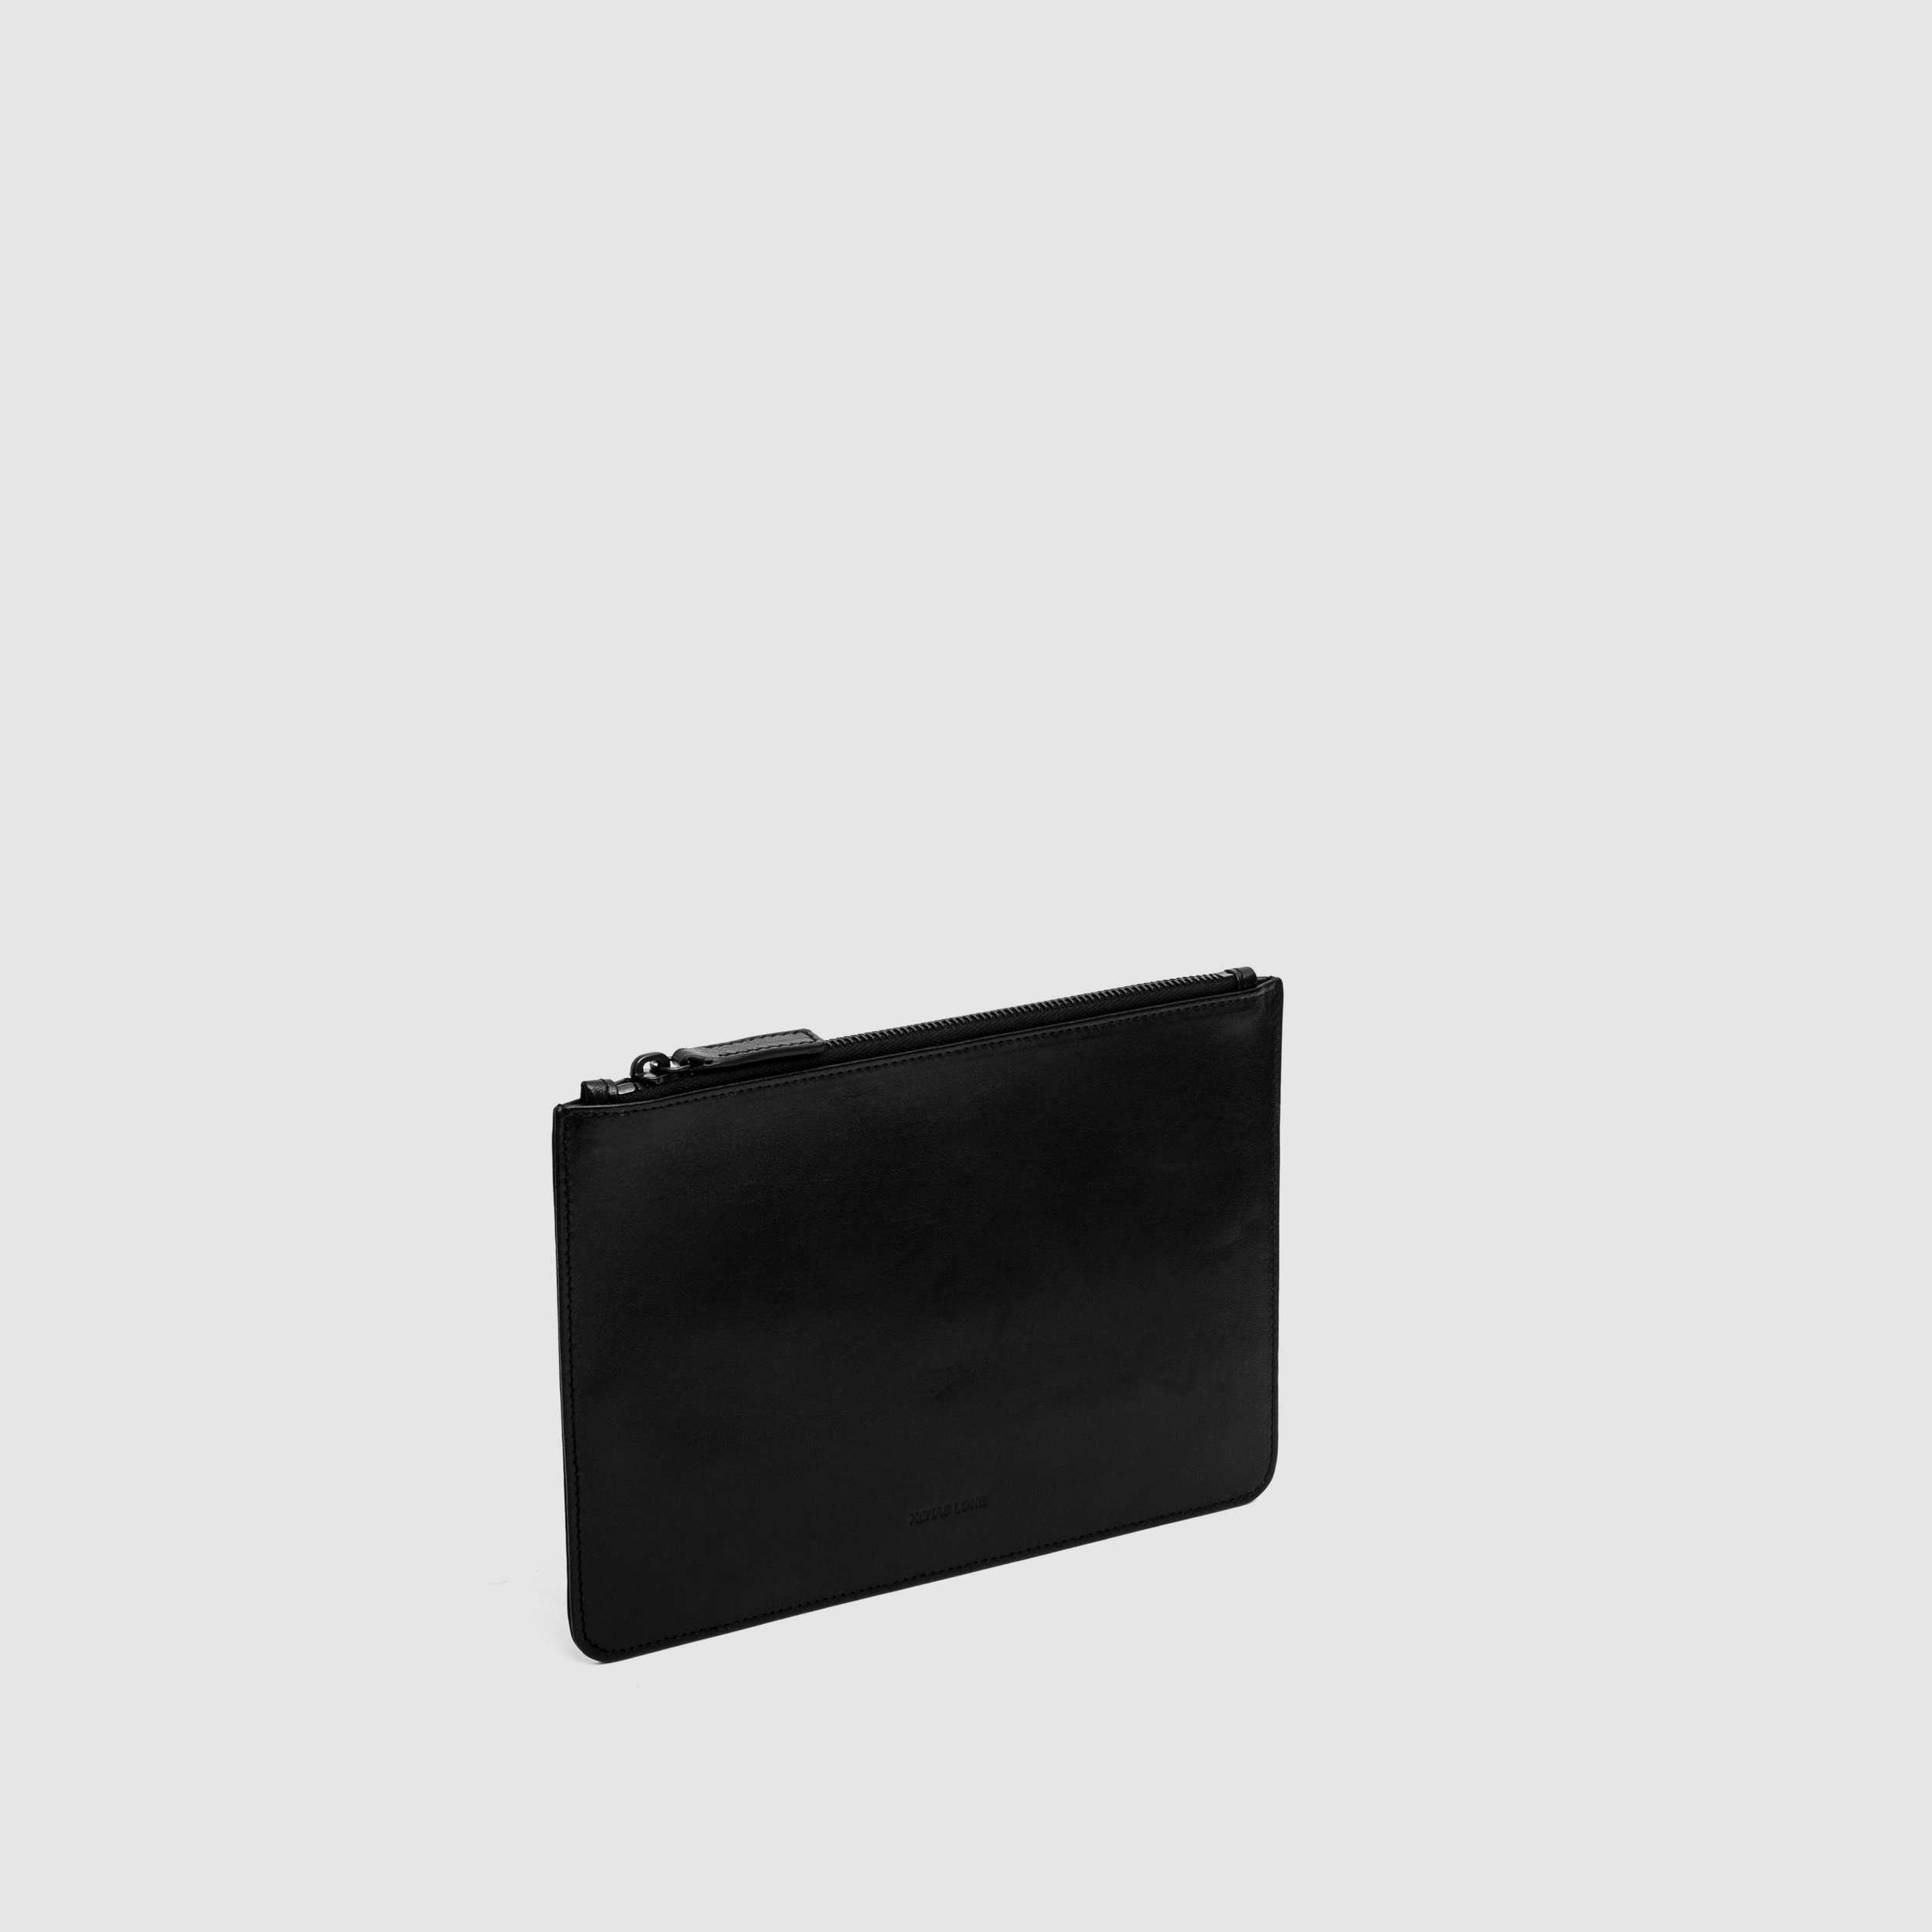 Wallets&Pouches_0002s_0001s_0004_Layer 22.jpg